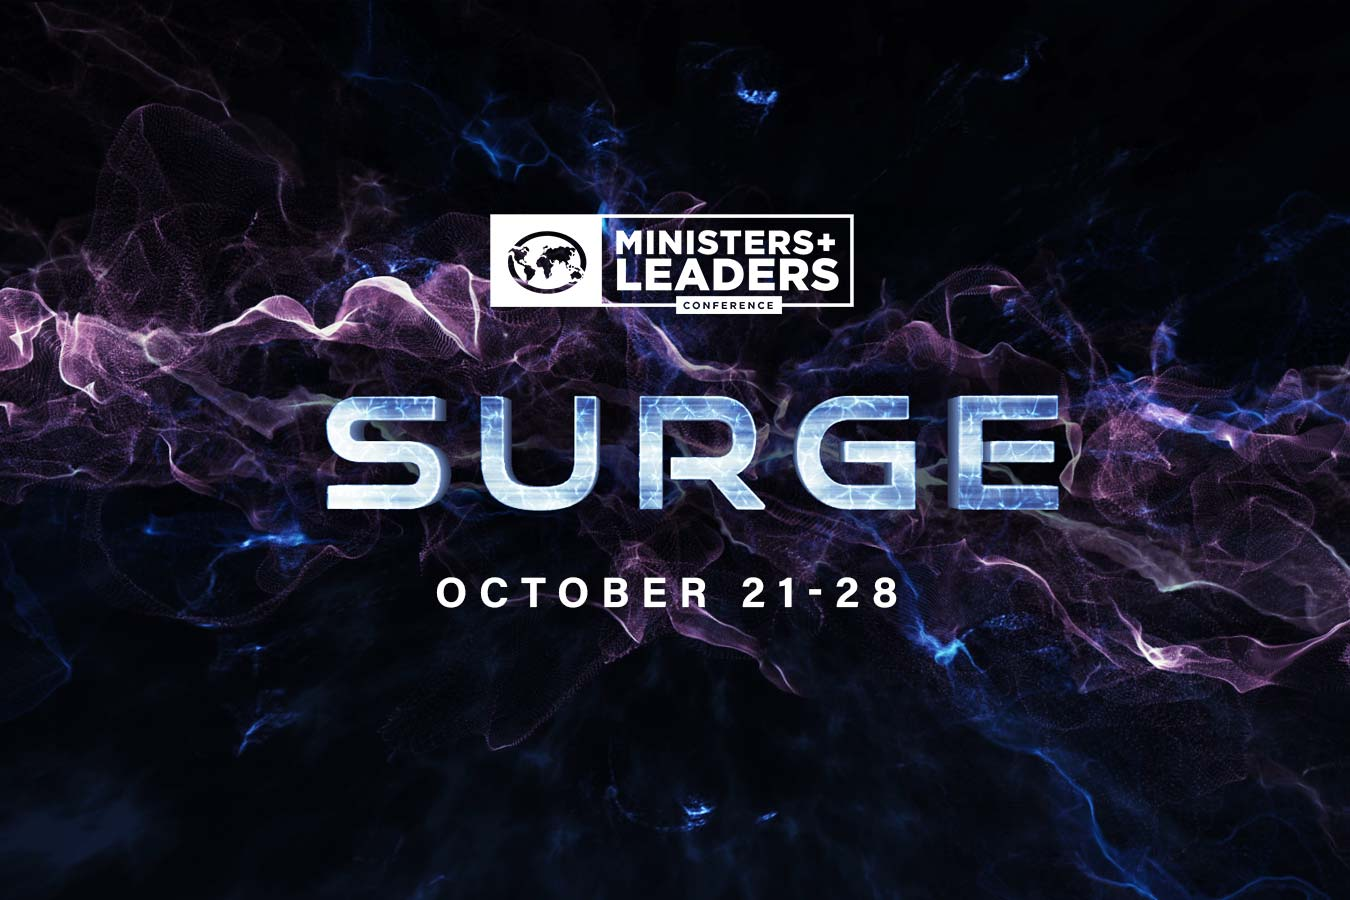 Fall Ministers' and Leaders' Conference 2018